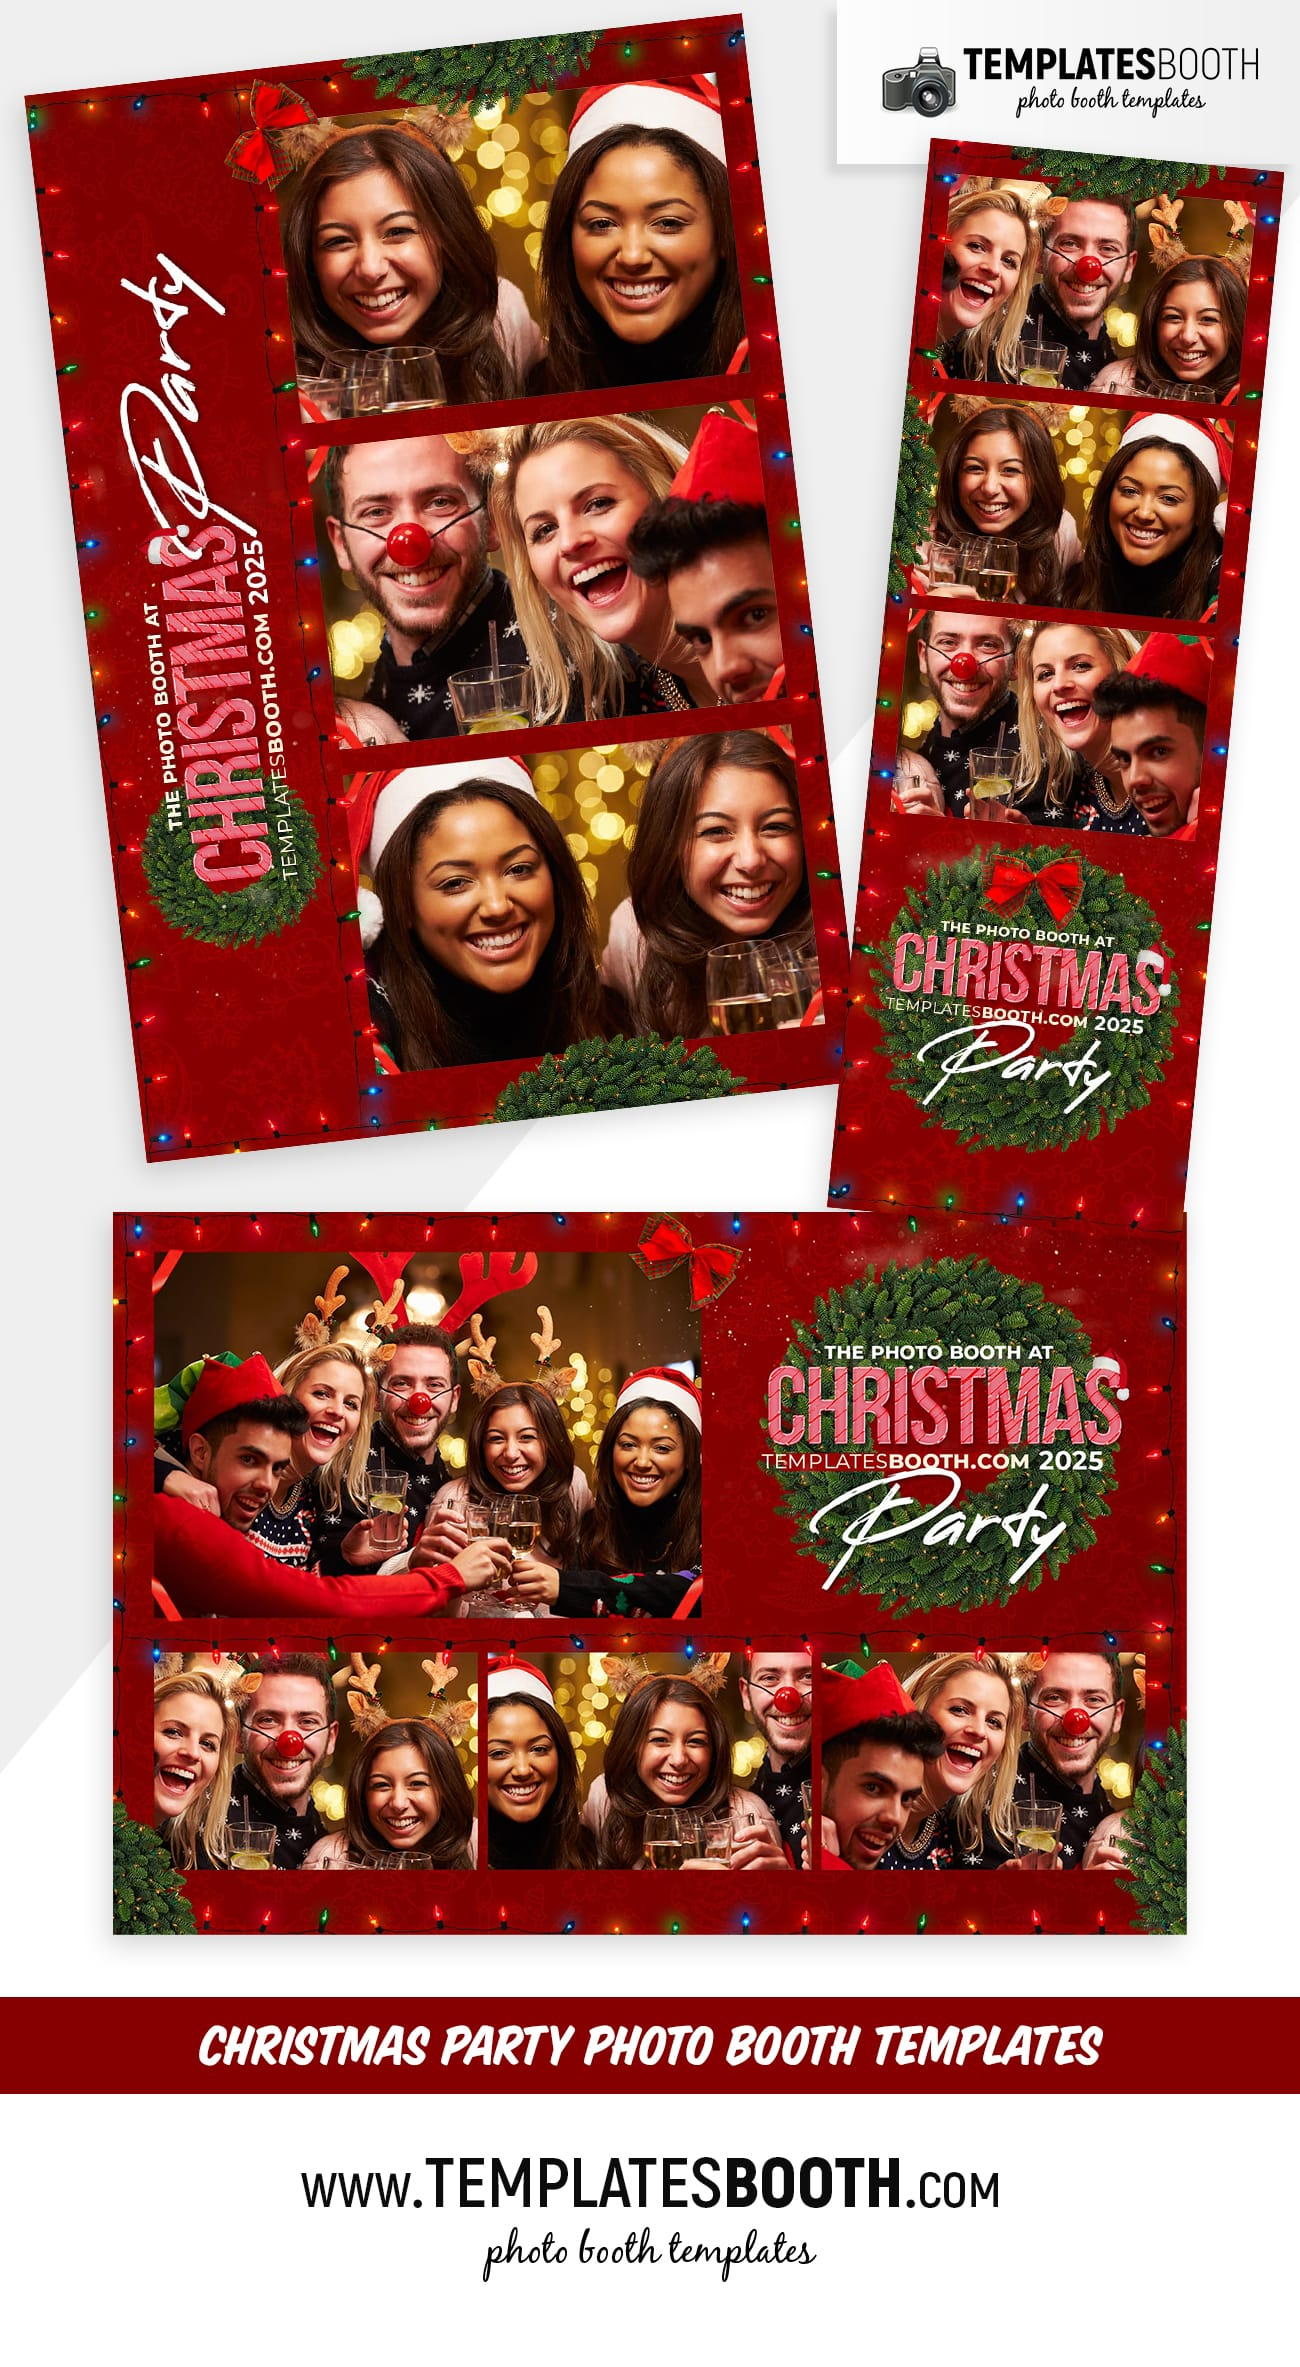 Christmas Party Photo Booth Templates